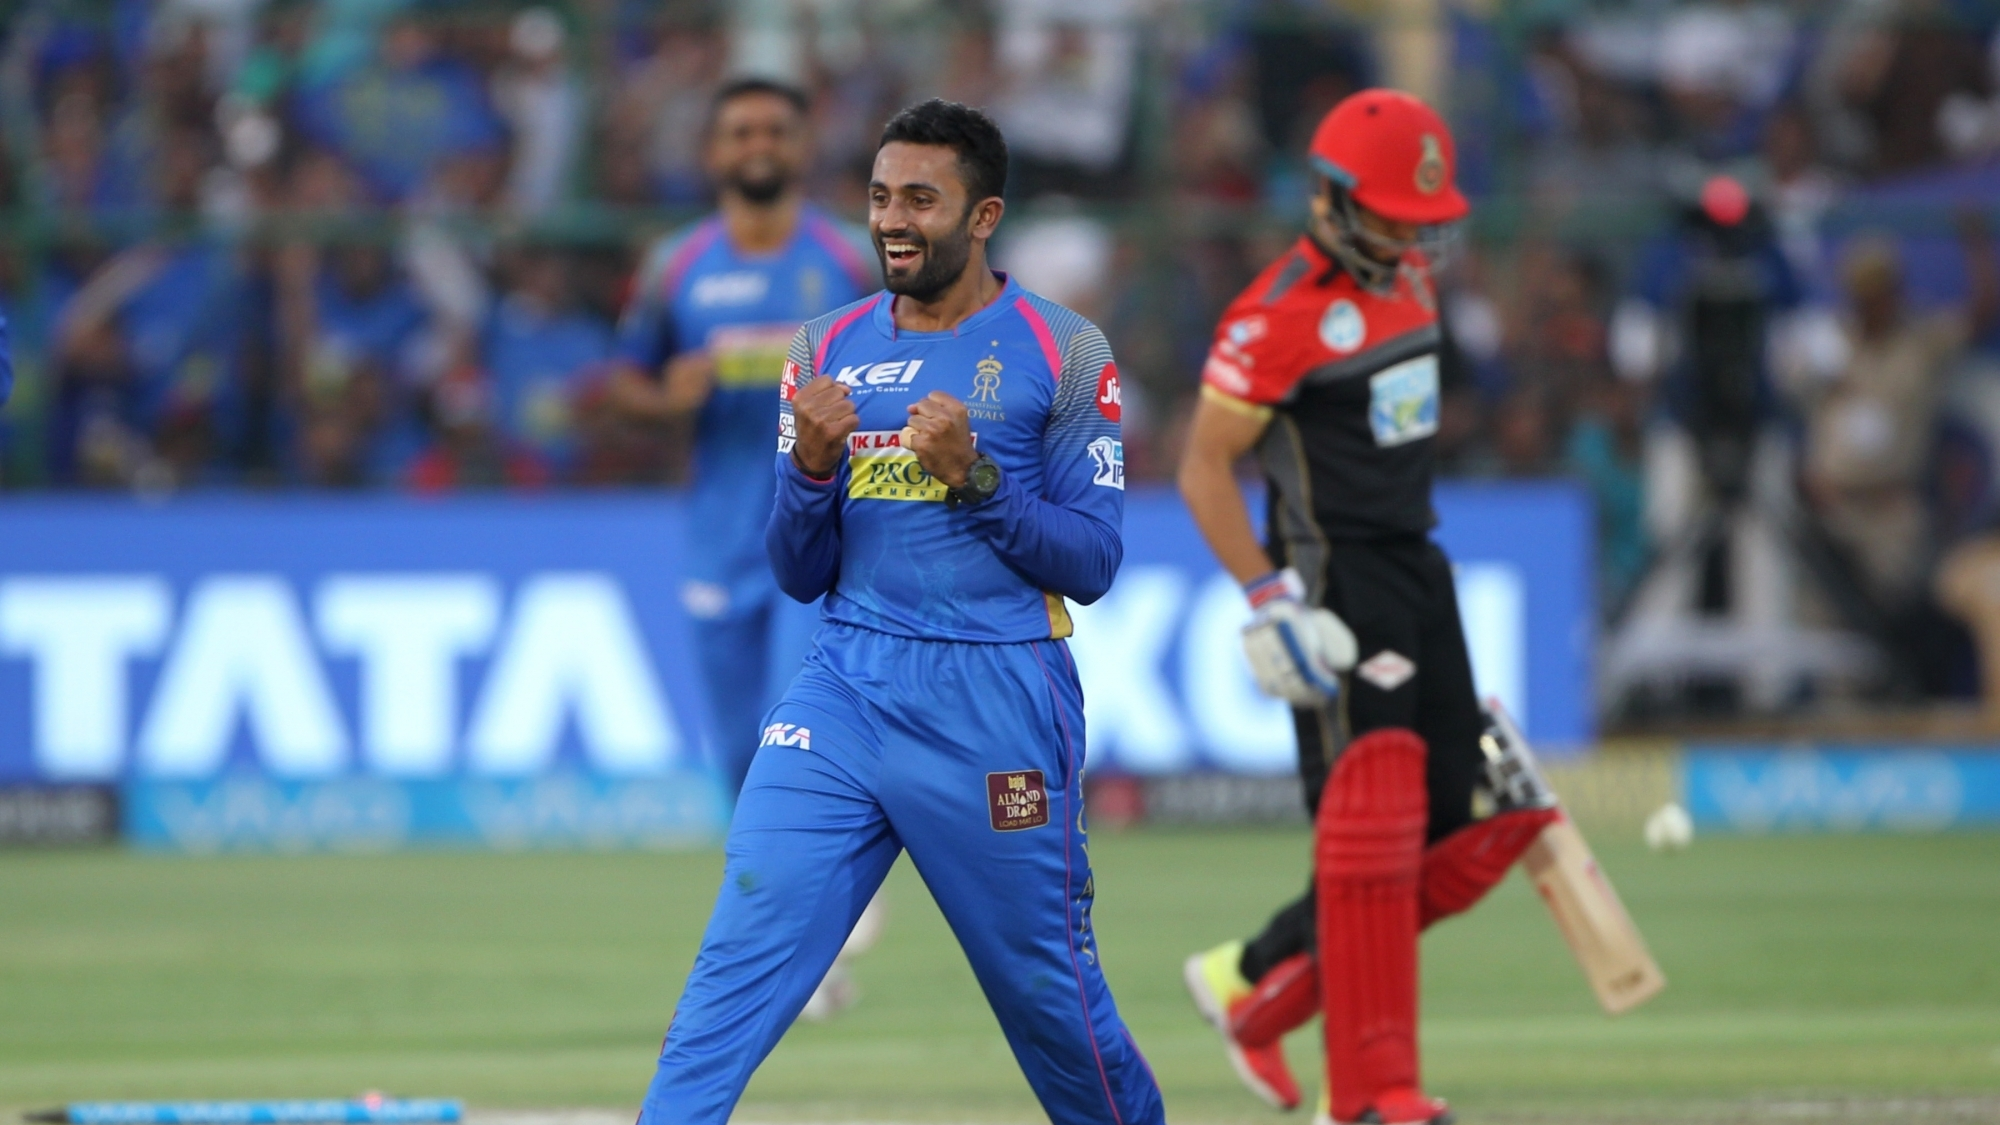 IPL 2018: I was shocked after getting AB de Villiers out, says Shreyas Gopal